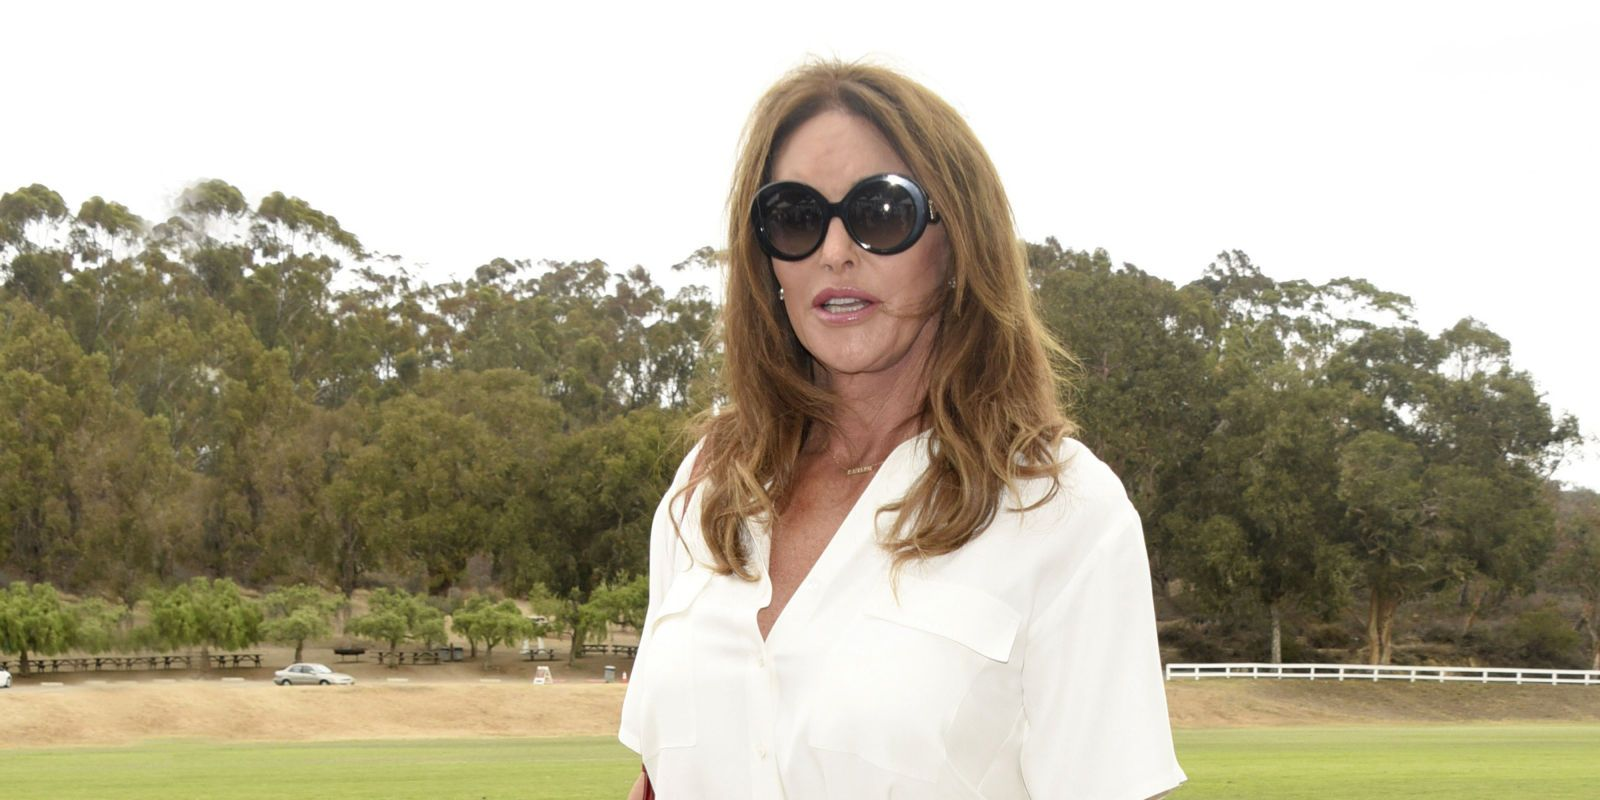 Caitlyn Jenner Has Officially Changed Her Name and Gender  - MarieClaire.com